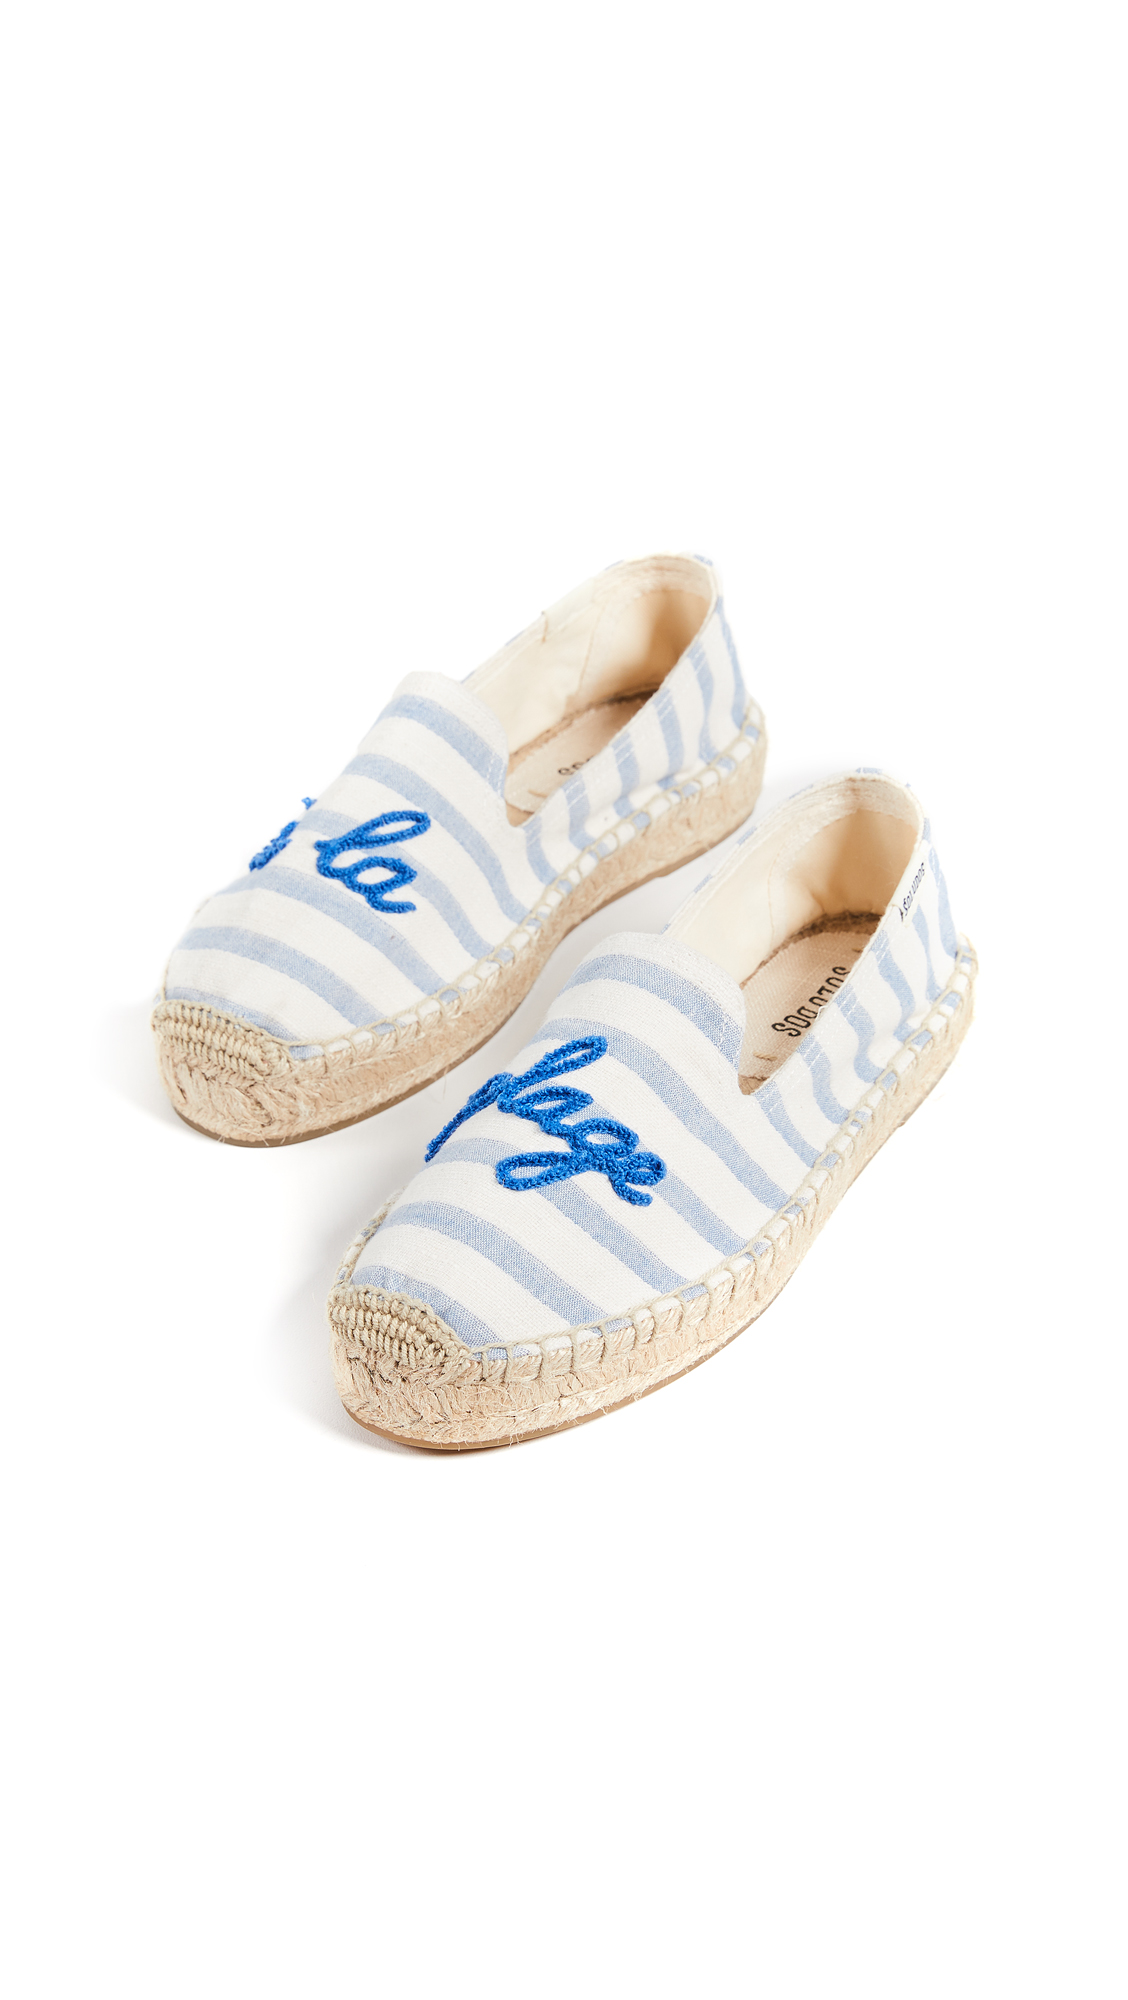 Soludos A La Plage Smoking Slippers - Natural/Blue